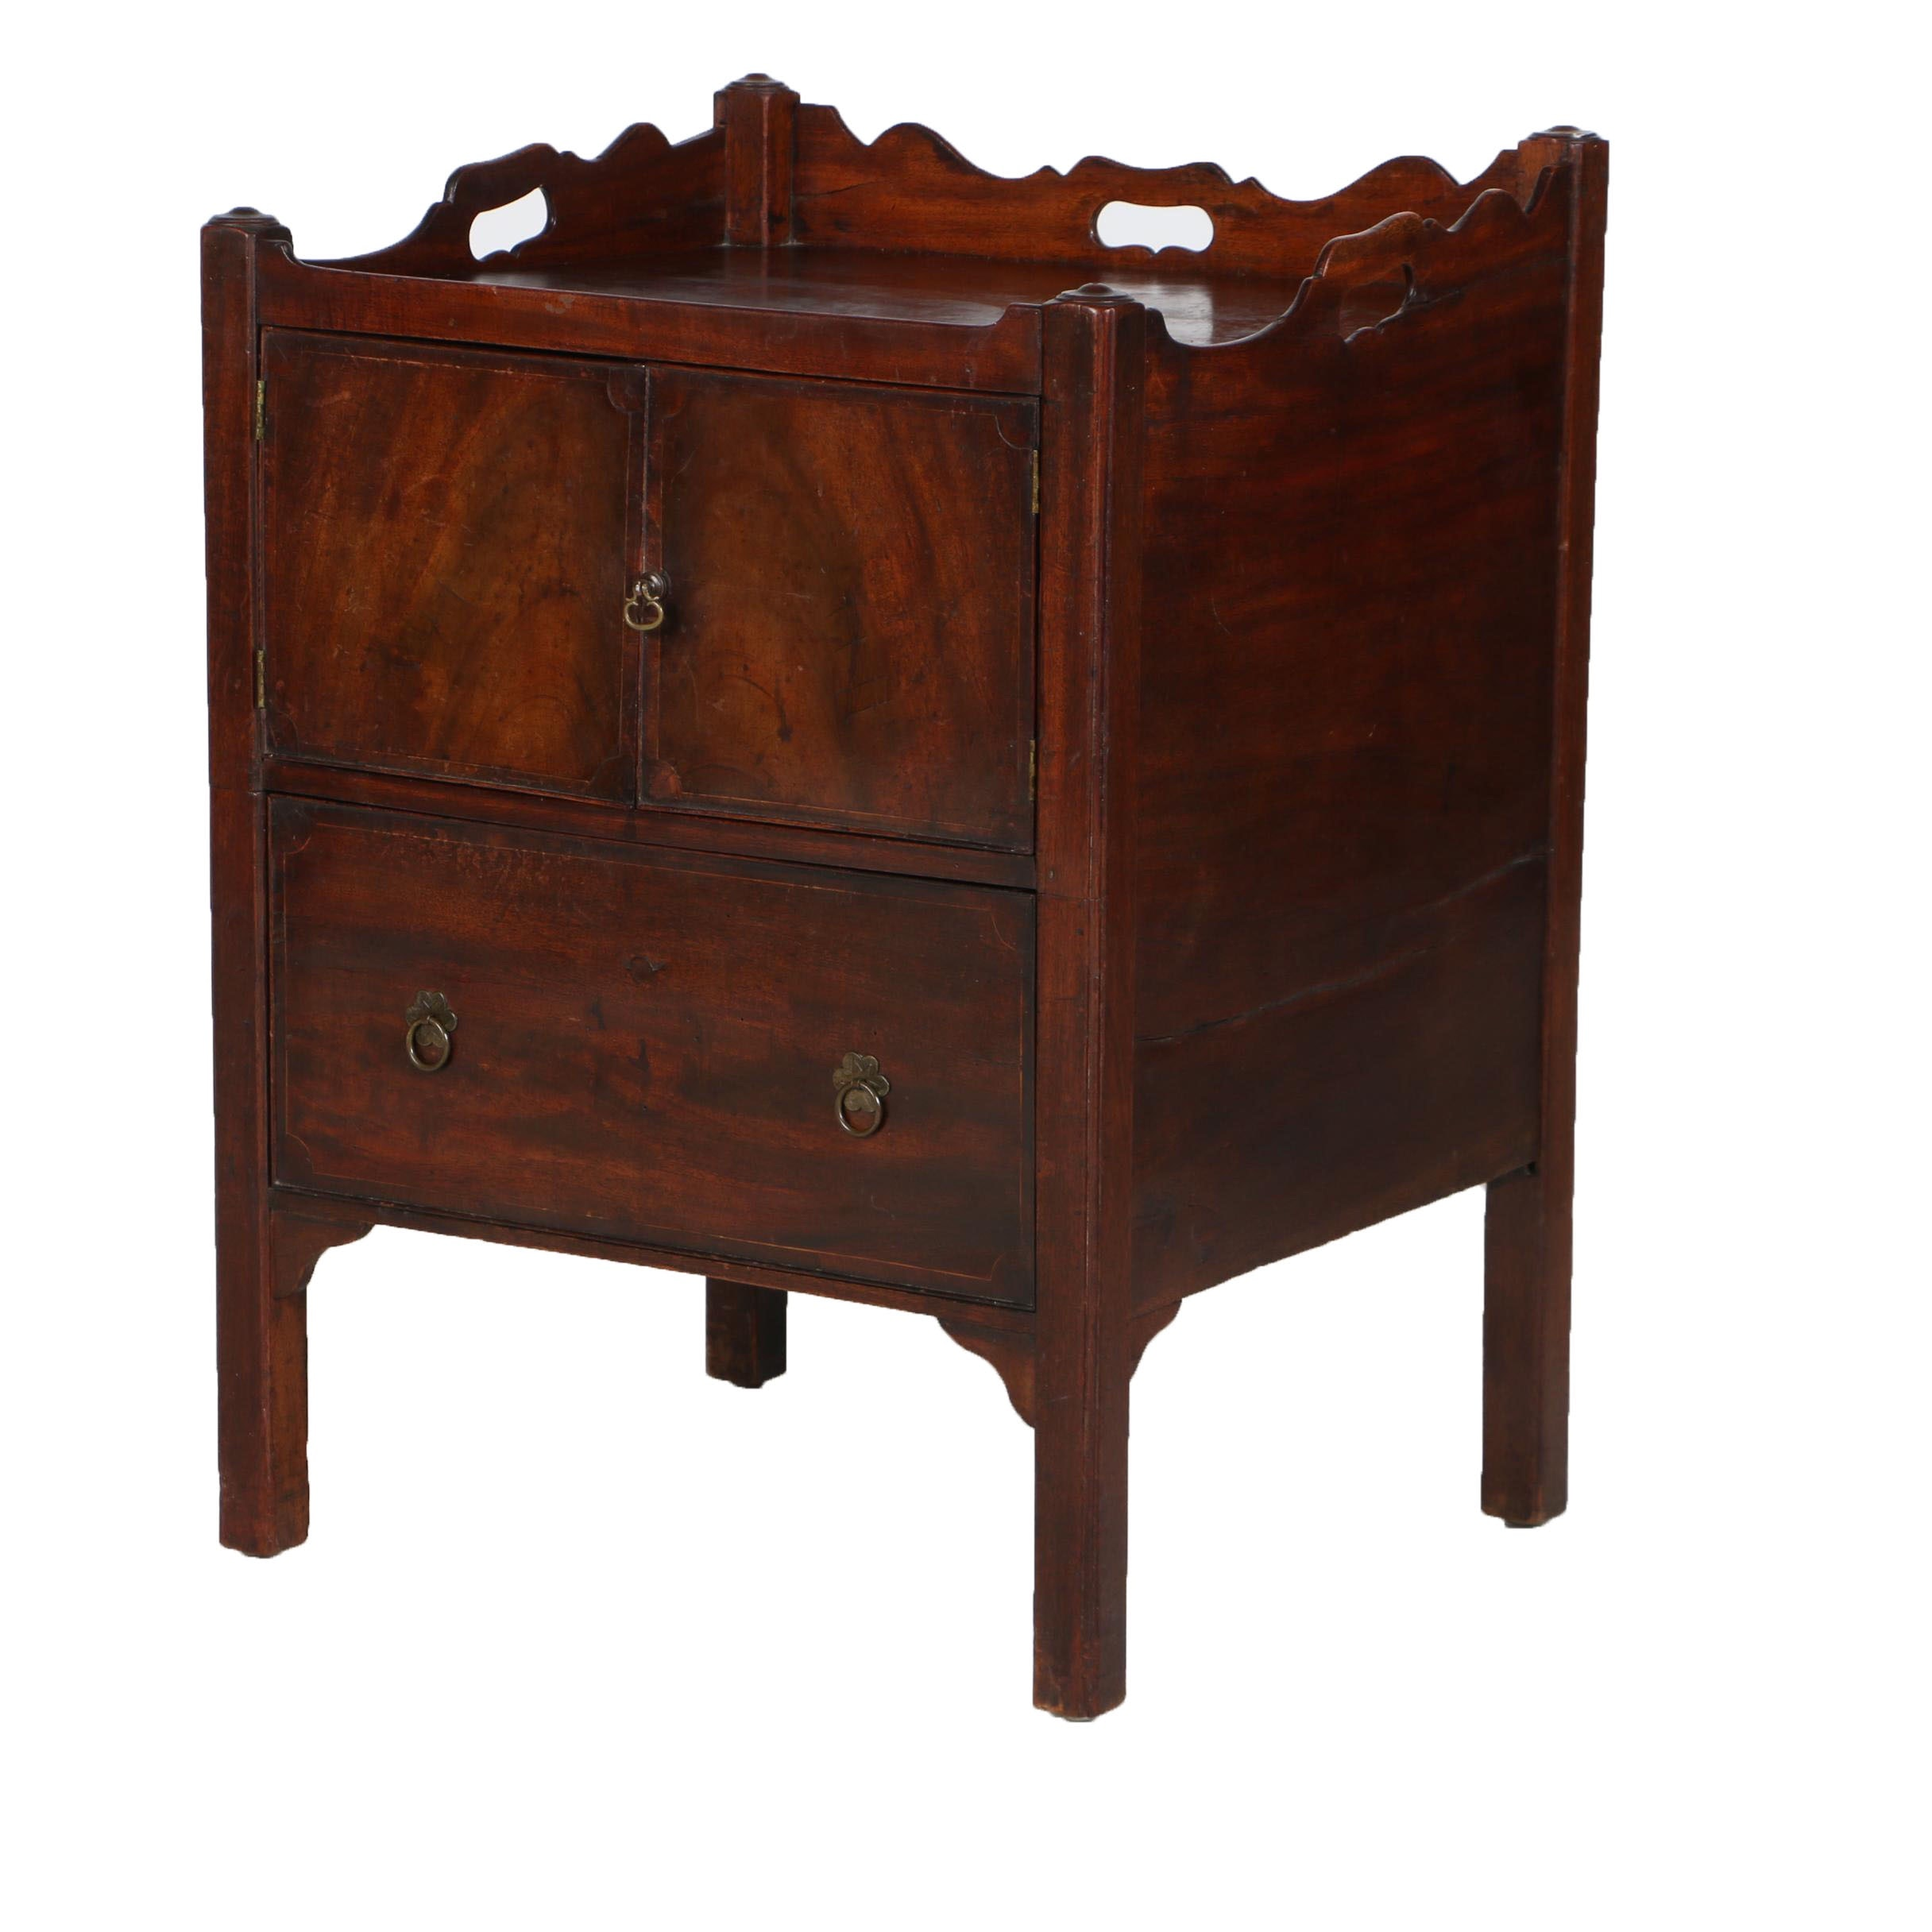 George III String-Inlaid Mahogany Bedside Cabinet, Late 18th Century